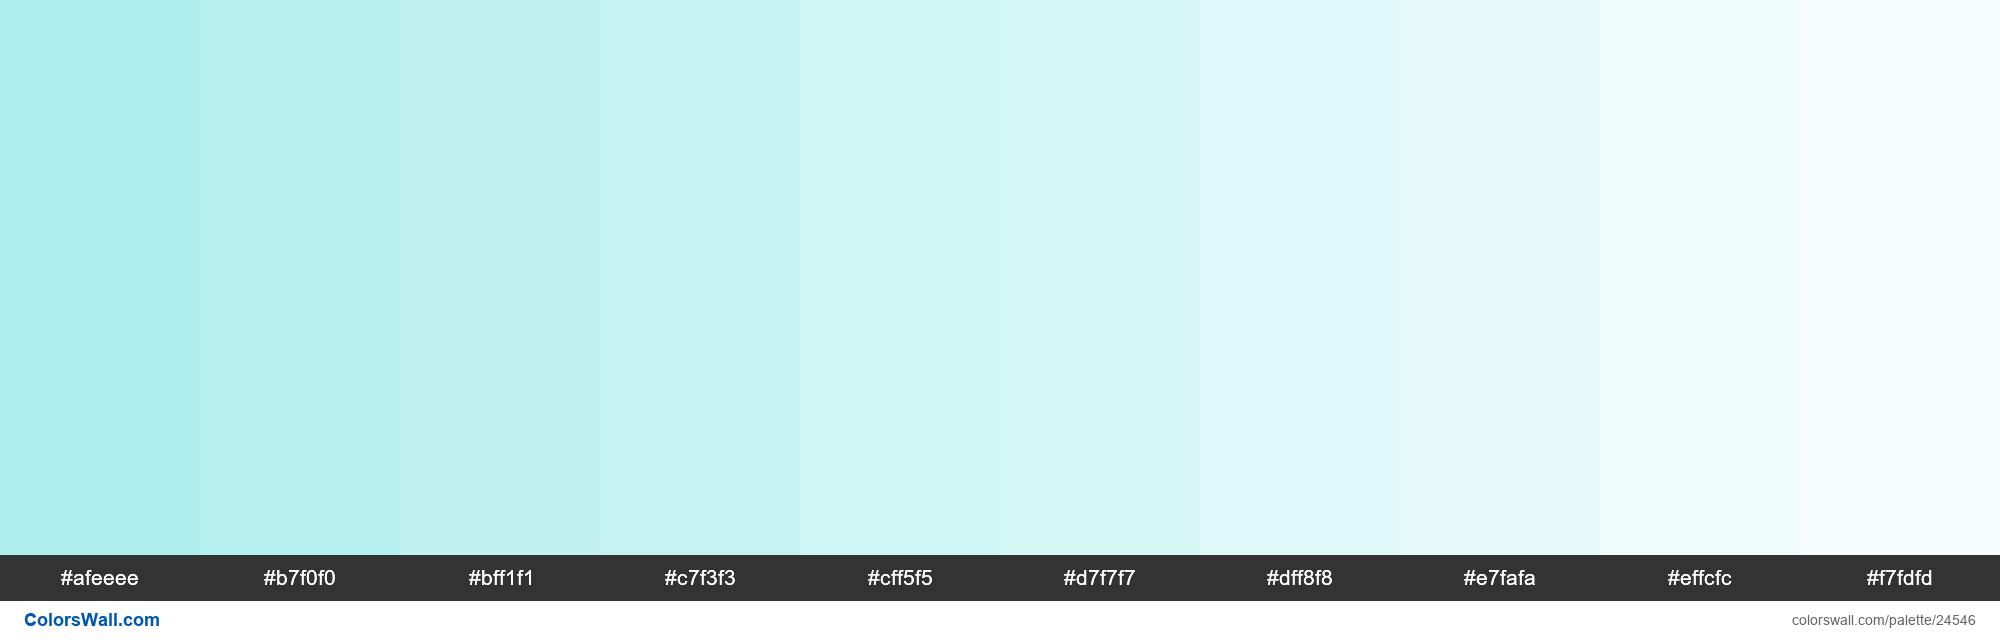 Tints of Pale Turquoise #AFEEEE hex color - #24546